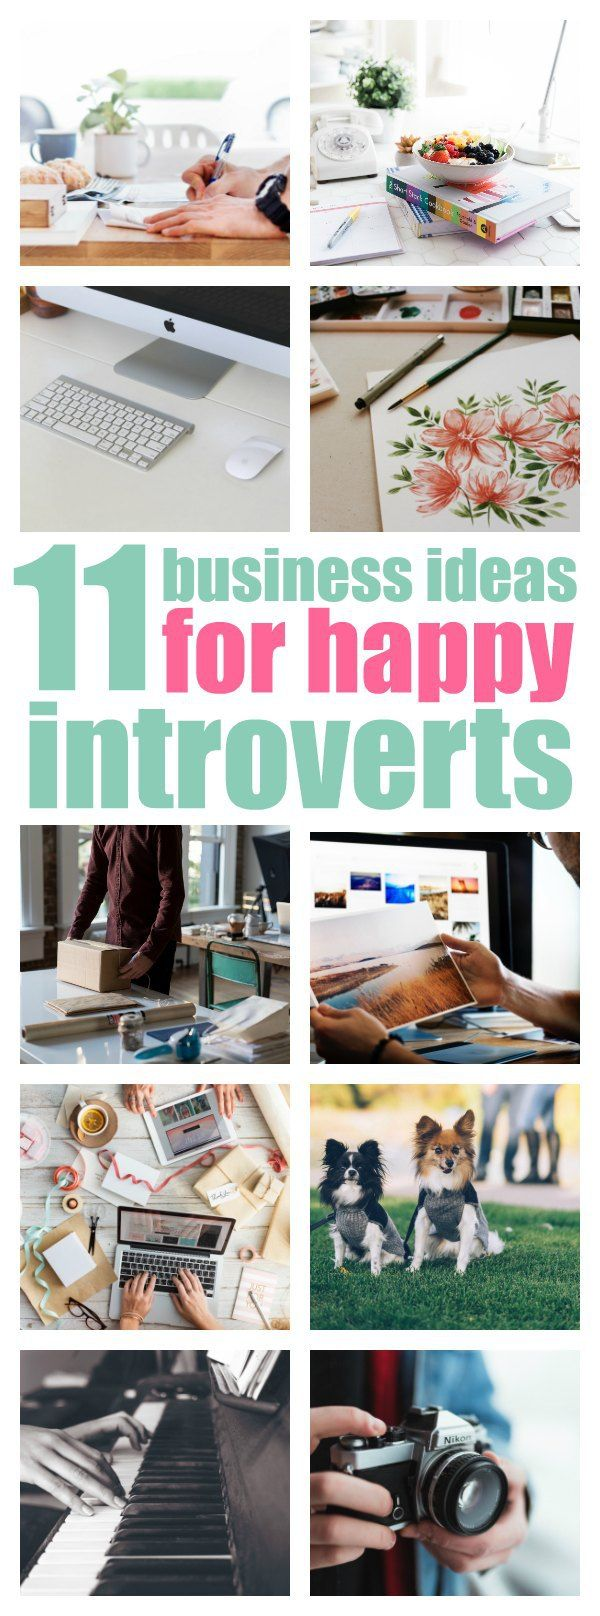 business ideas that will fill an introvert's heart with joy